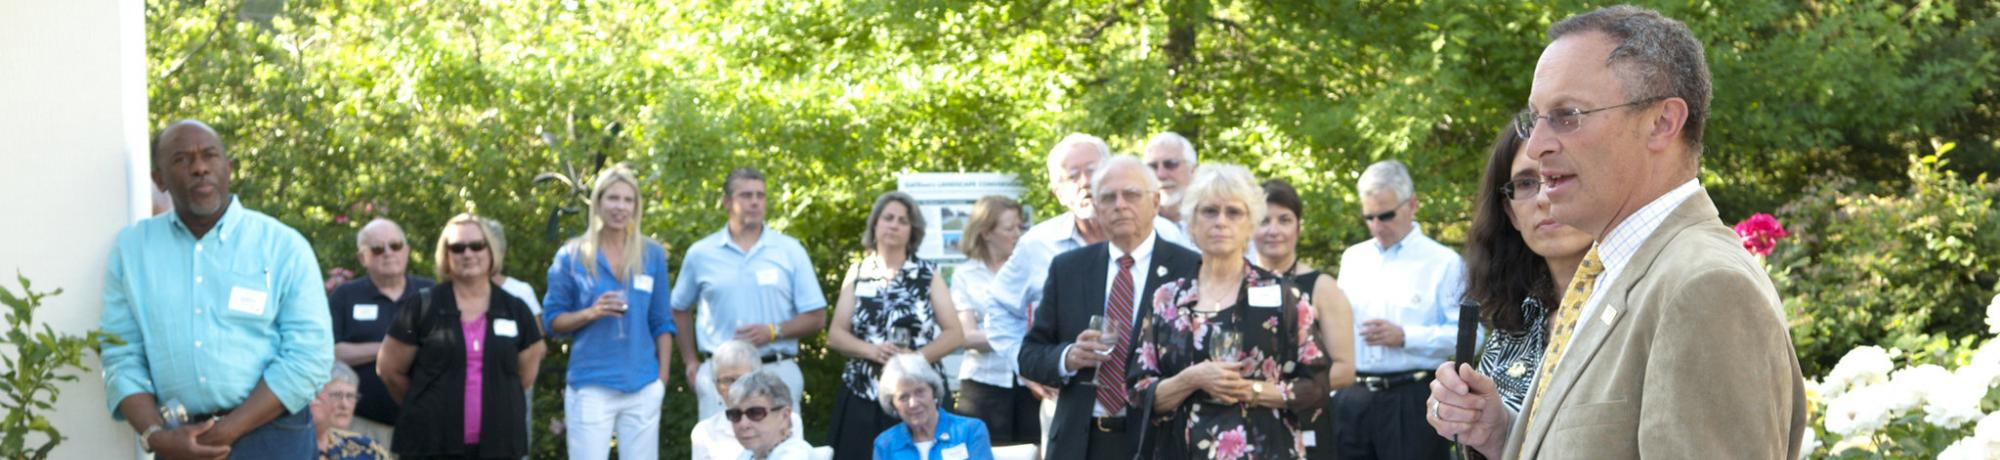 Image of Provost Hexter addressing UC Davis Arboretum and Public Garden donors and members.